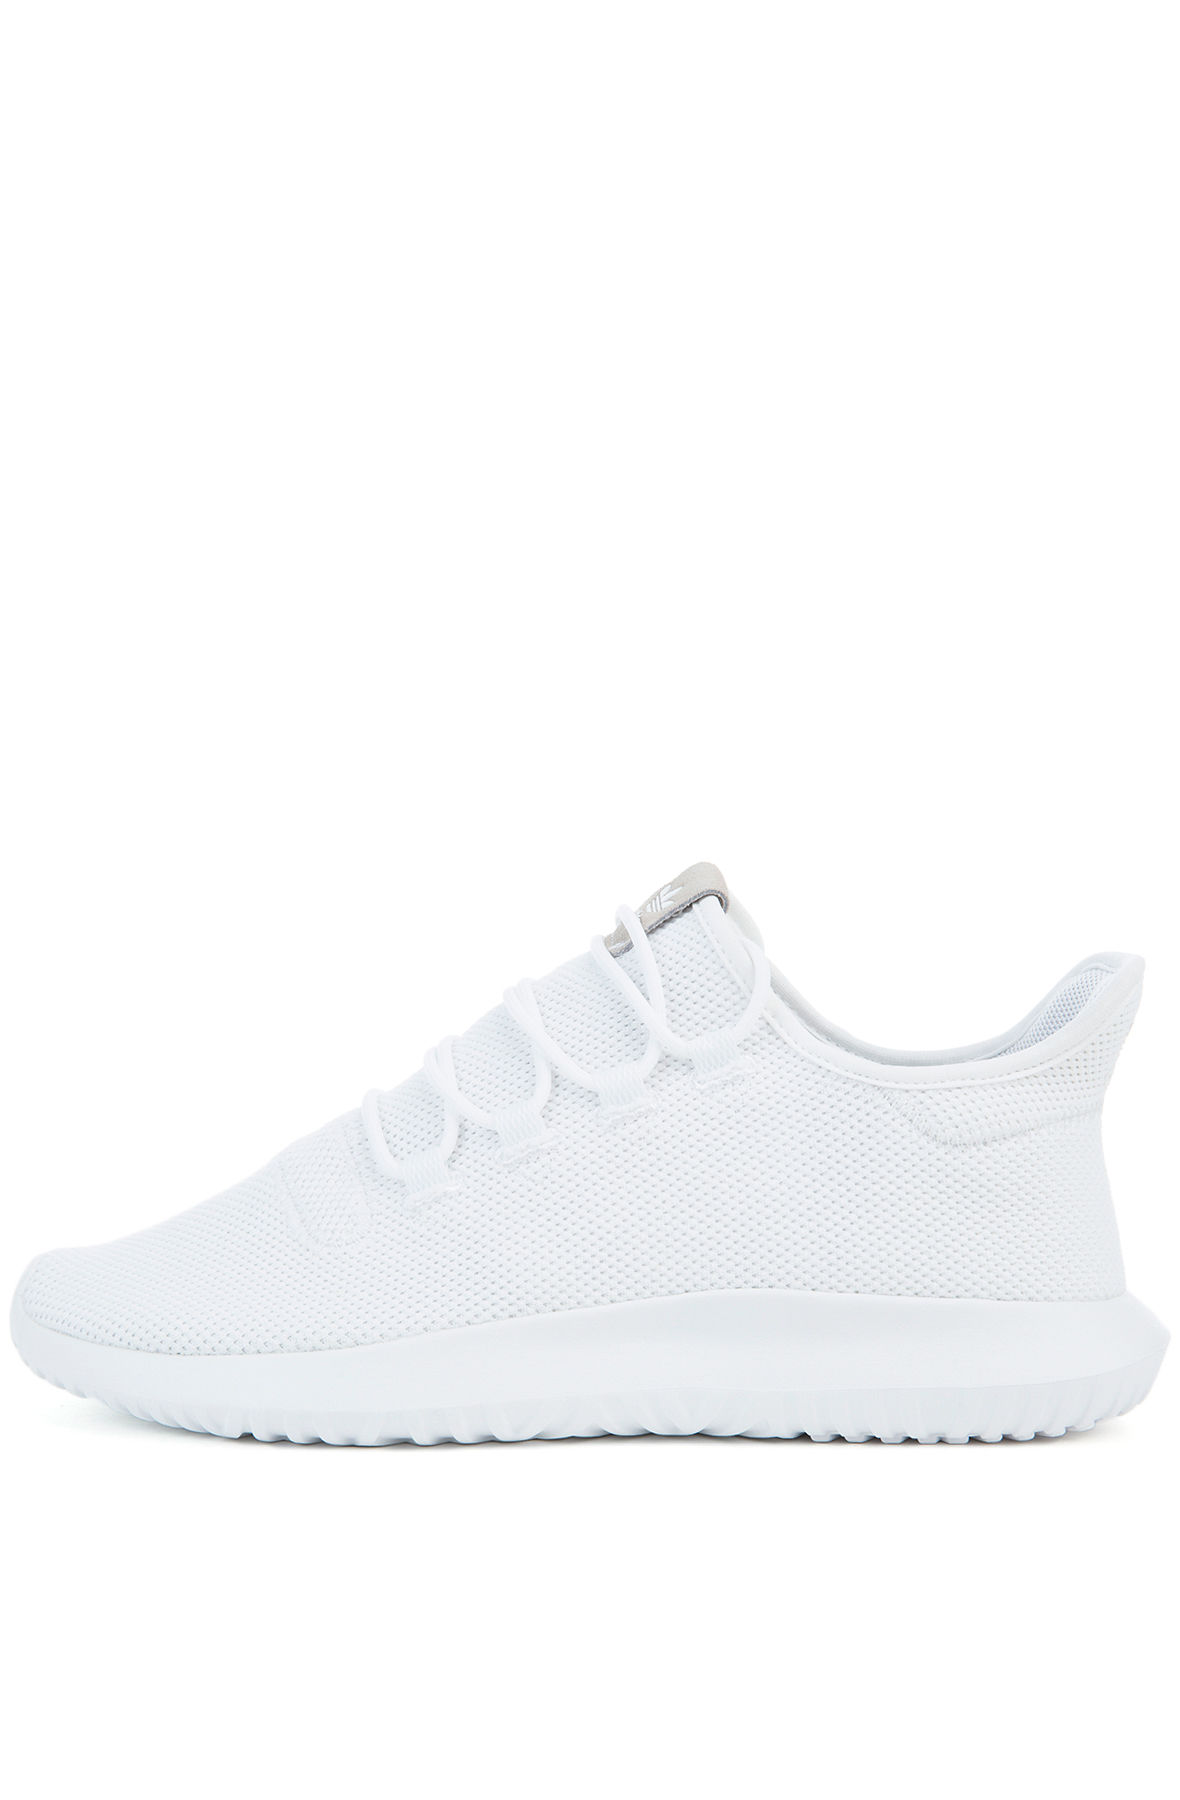 The Tubular Shadow in Footwear White; Core Black and Footwear White